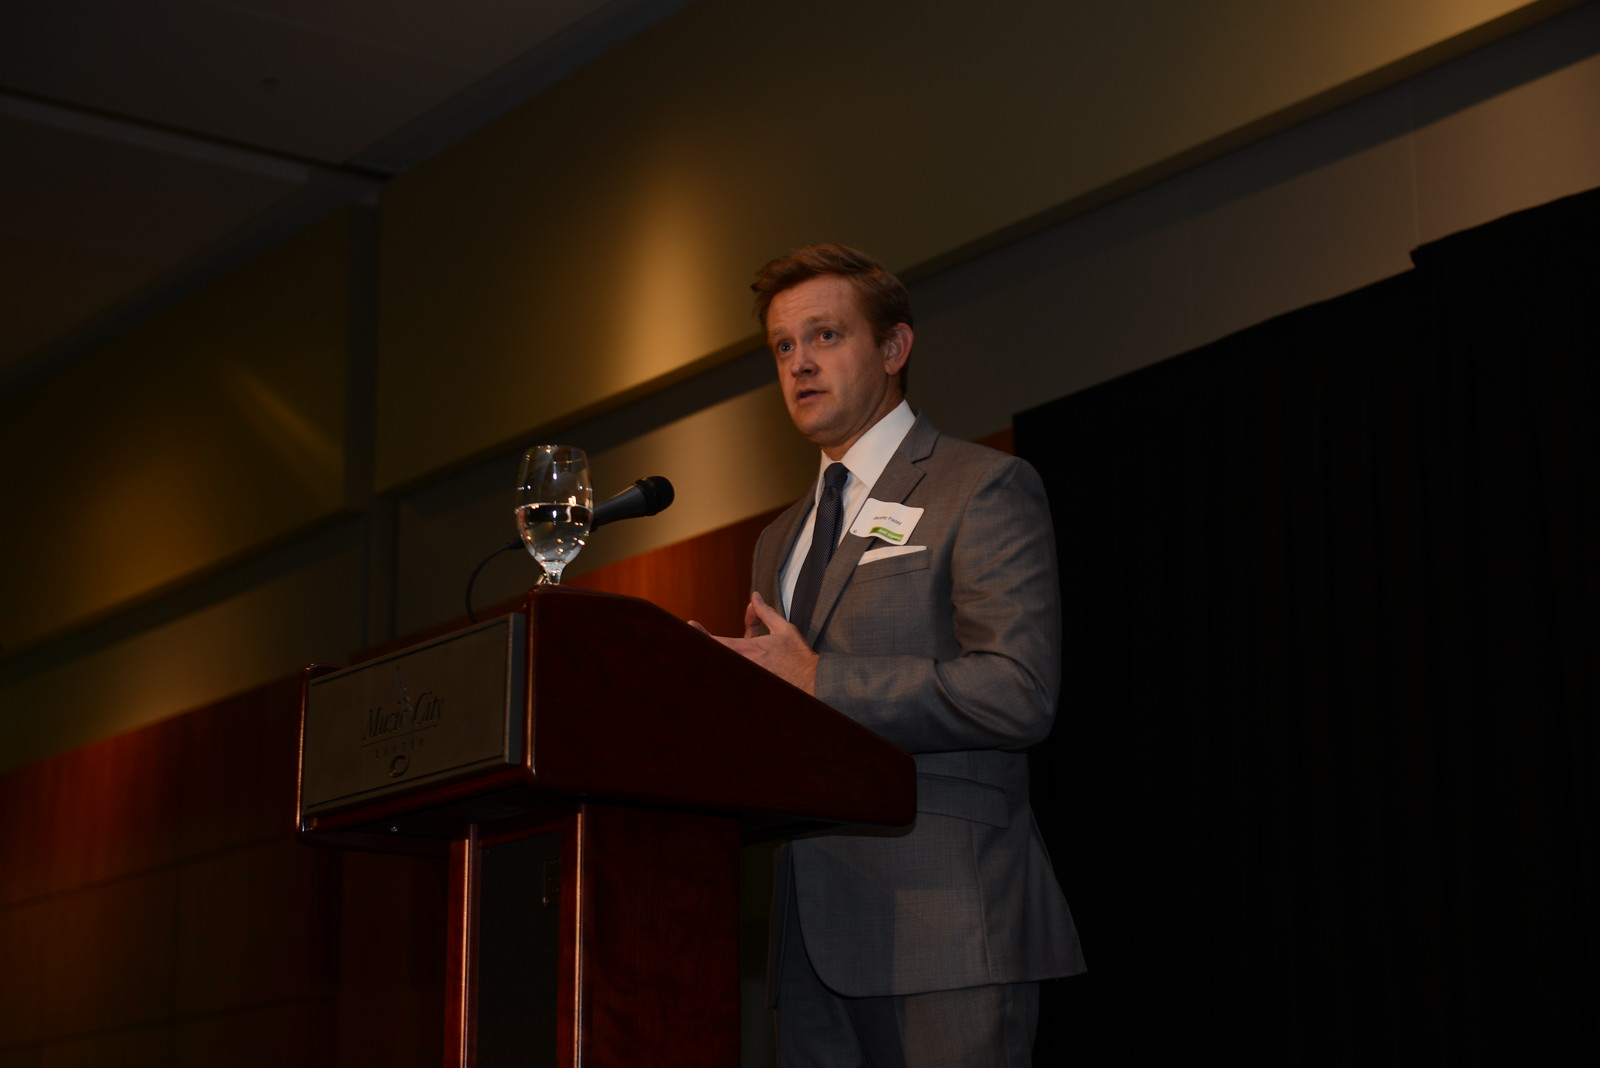 Event emcee, Jeremy Finley